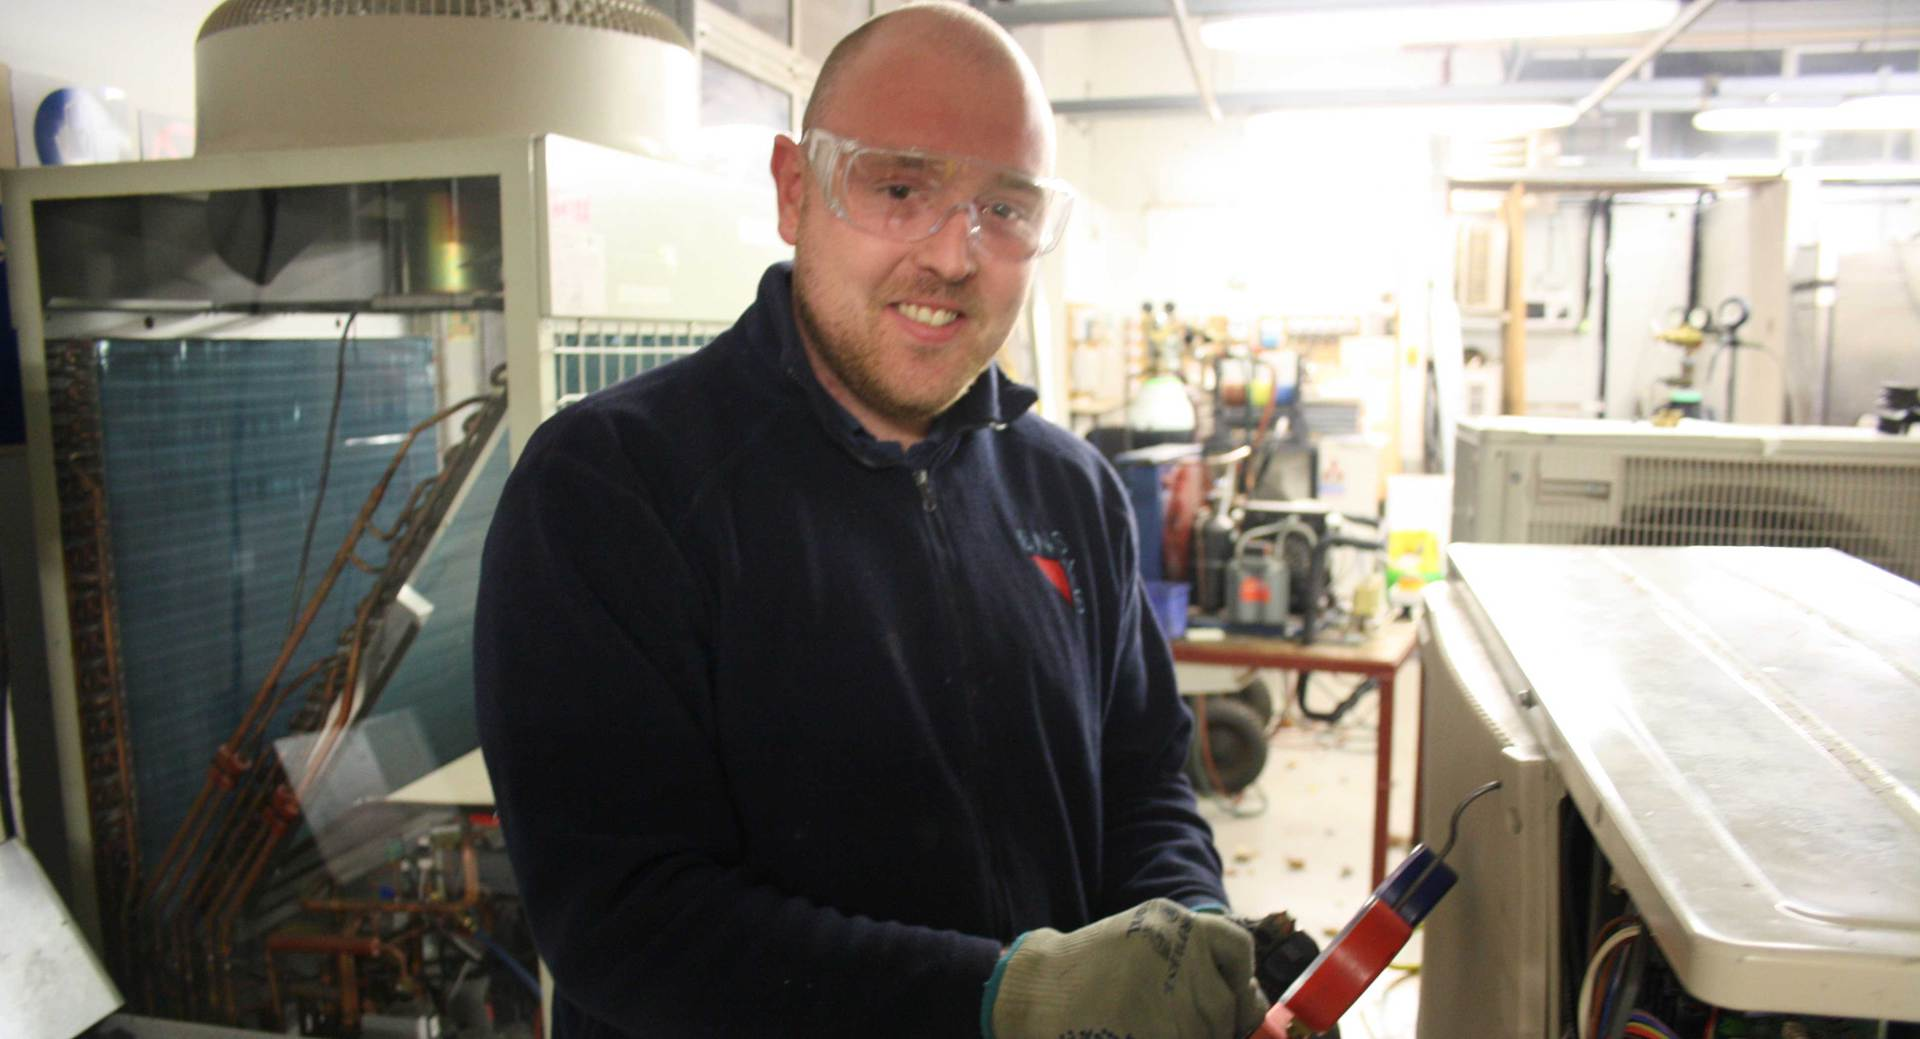 Air Conditioning student named finalist for ACR Trainee of the Year Award